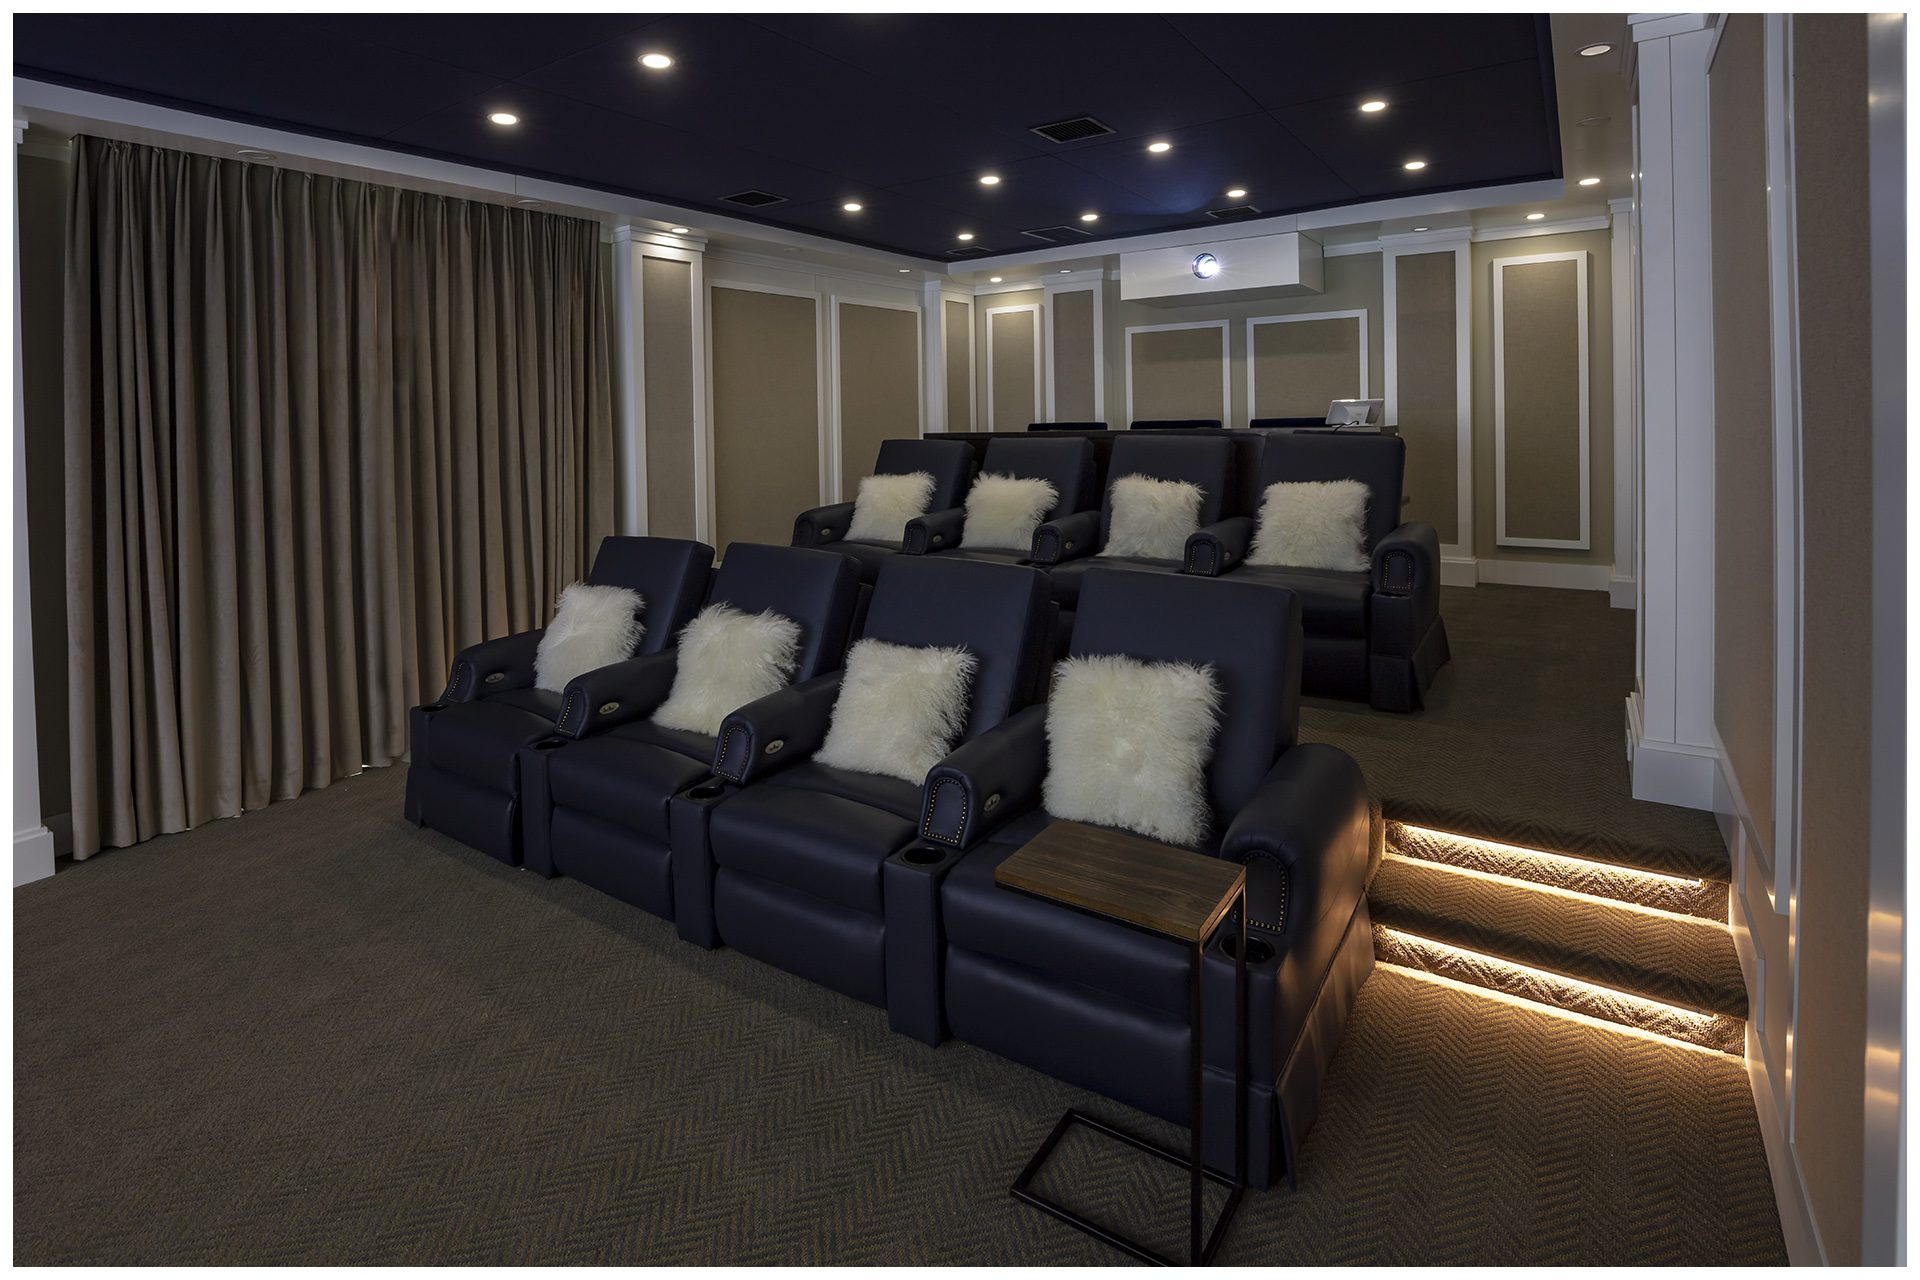 THEATER IN A DEDICATED ROOMProjector is enclosed in a sealed enclosure in the back to prevent projector noise to be audible in the room.  Electronic side drapes allow day light to come in as this room is on the main floor of the residence and owners wished for it to remain bright, open and inviting when theater is not in use.